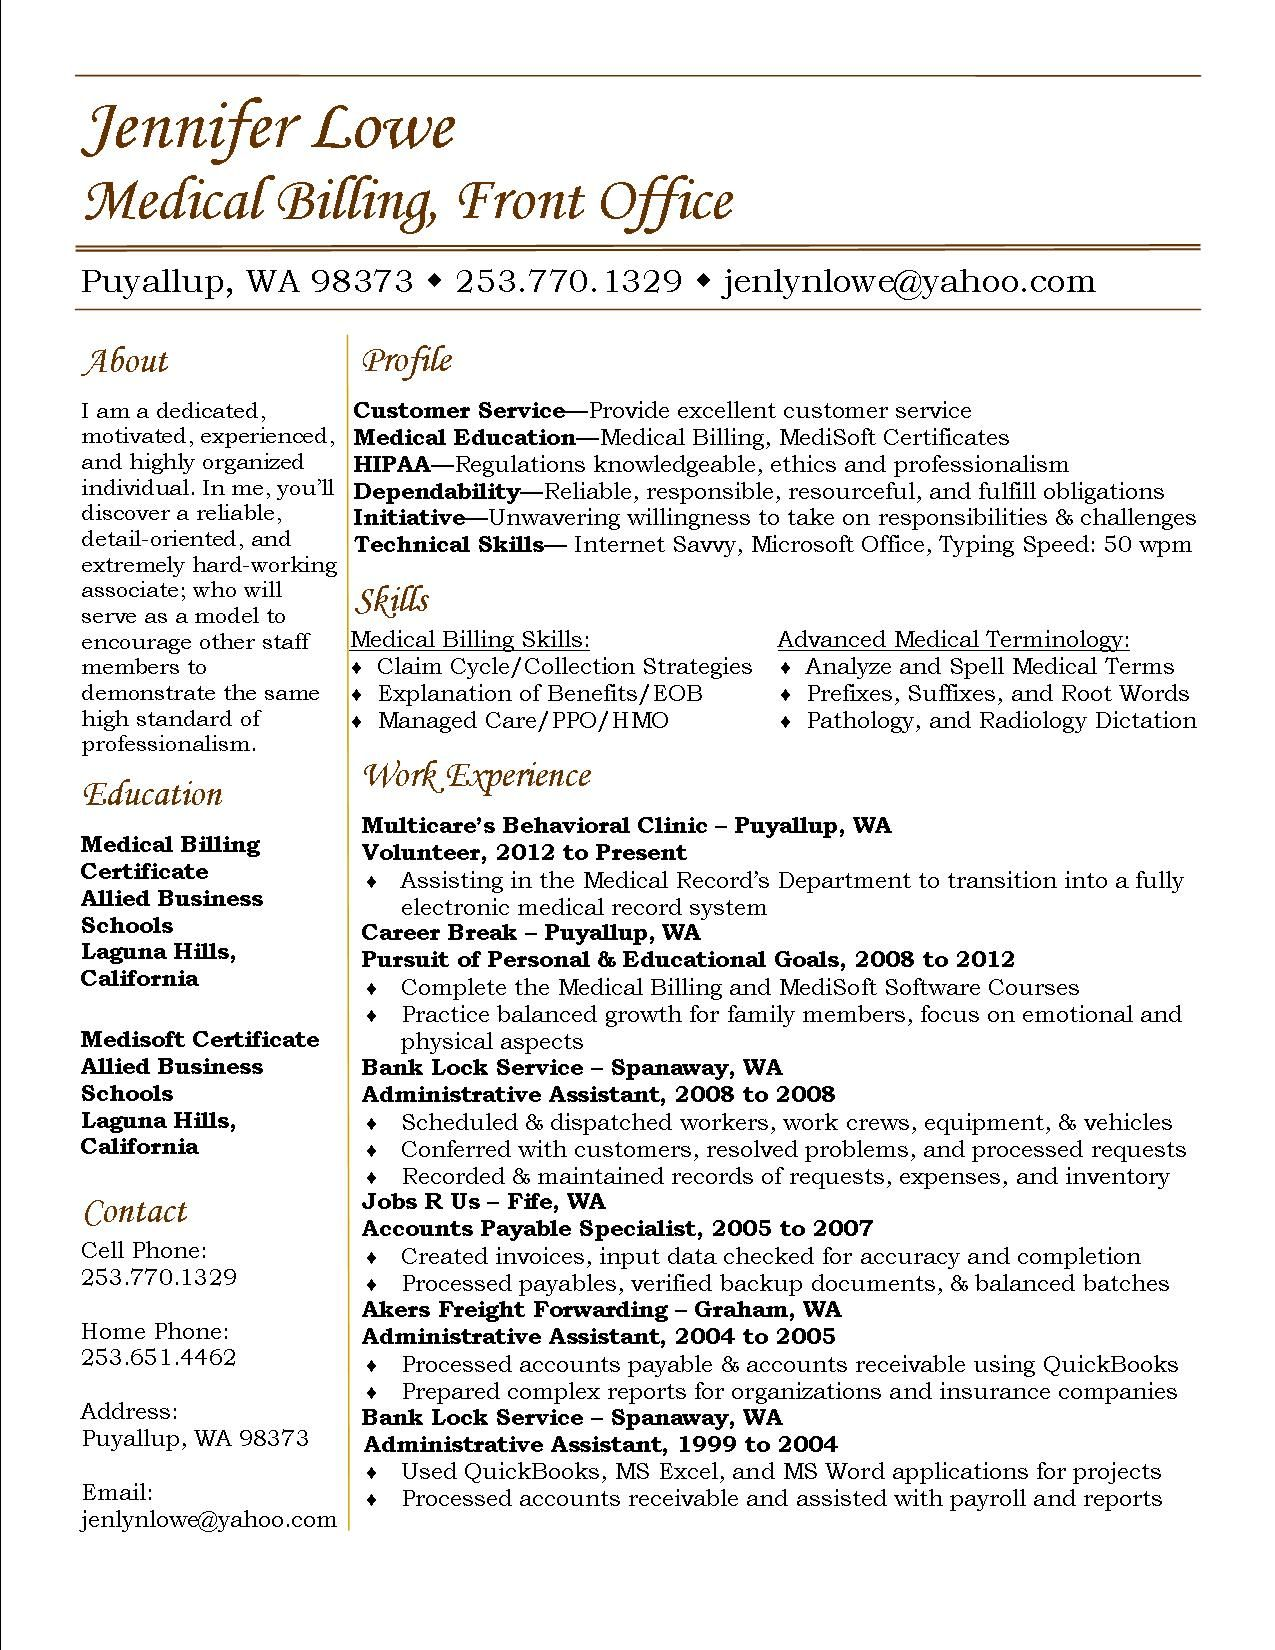 Jennifer Lowe Resume Medical Billing #resume #career Medical